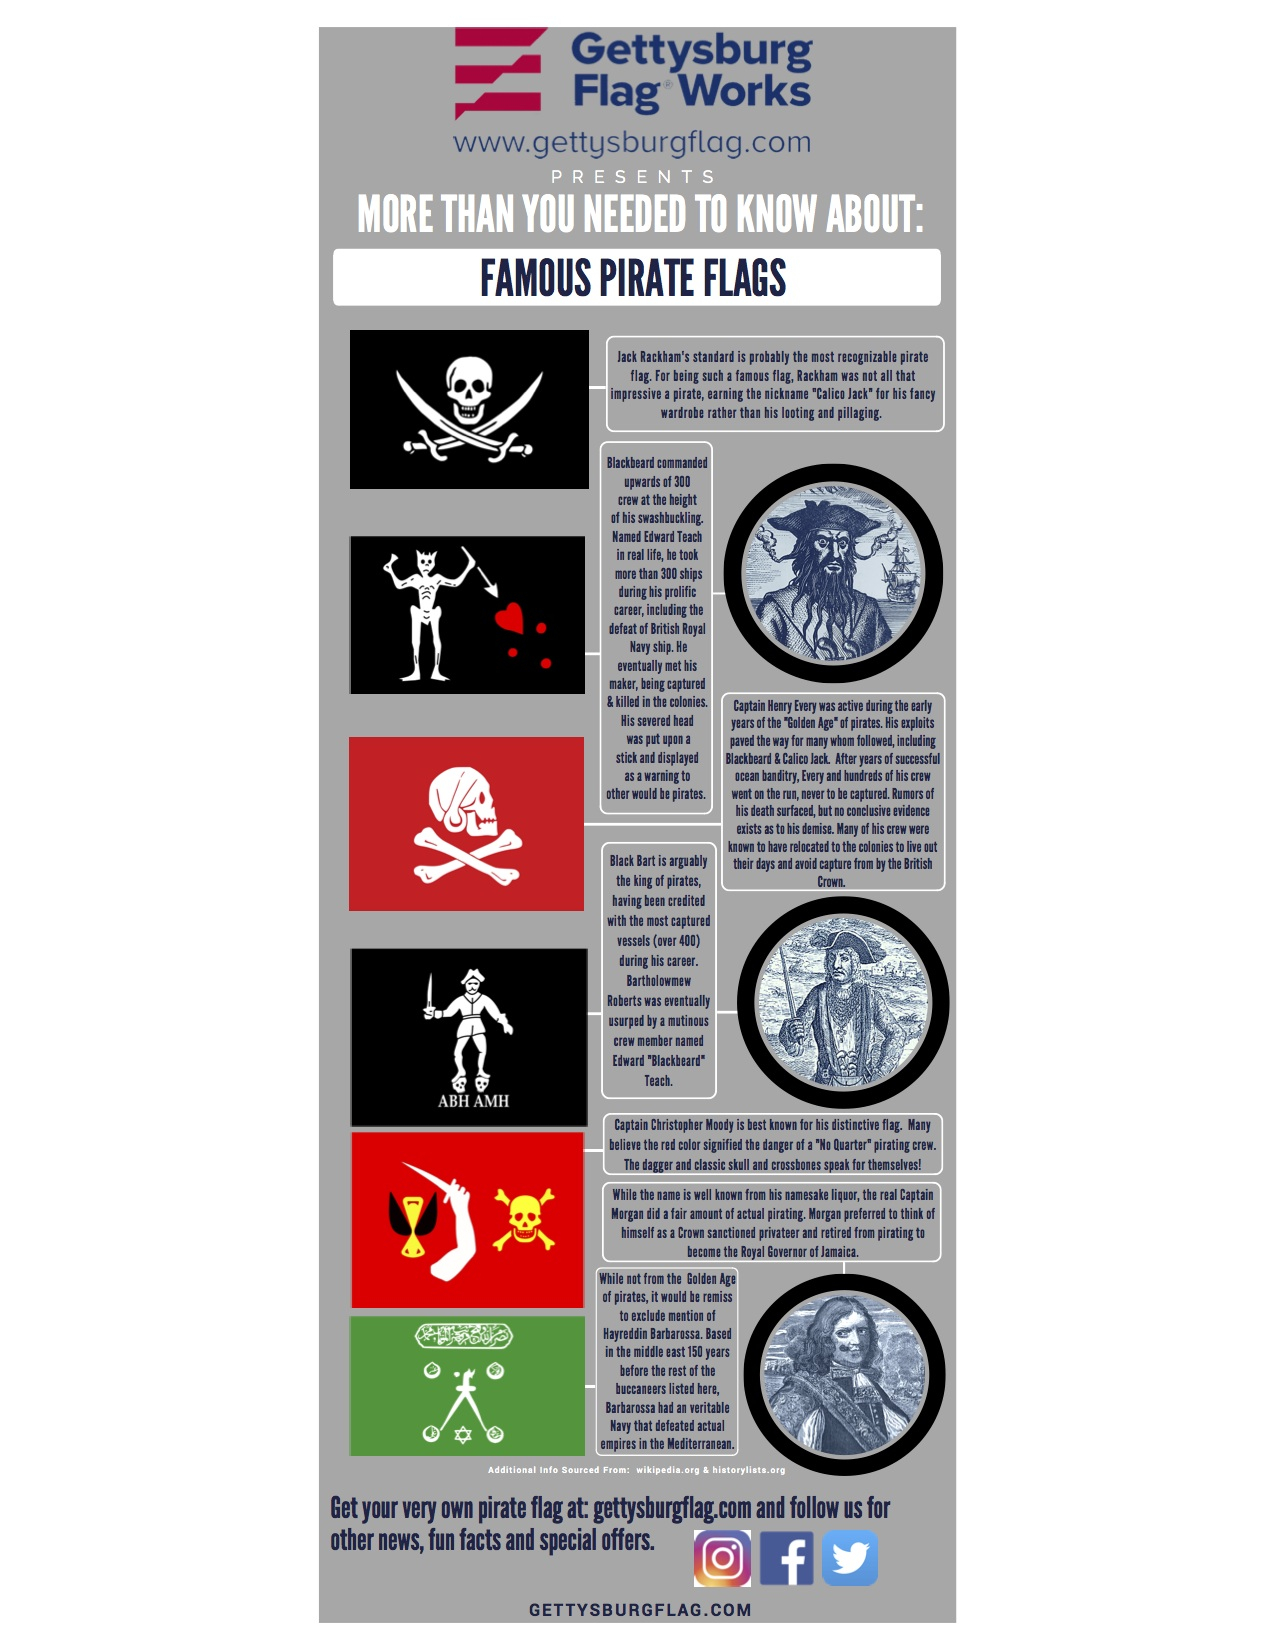 Pirate Flags & Jolly Roger Flags for Boats